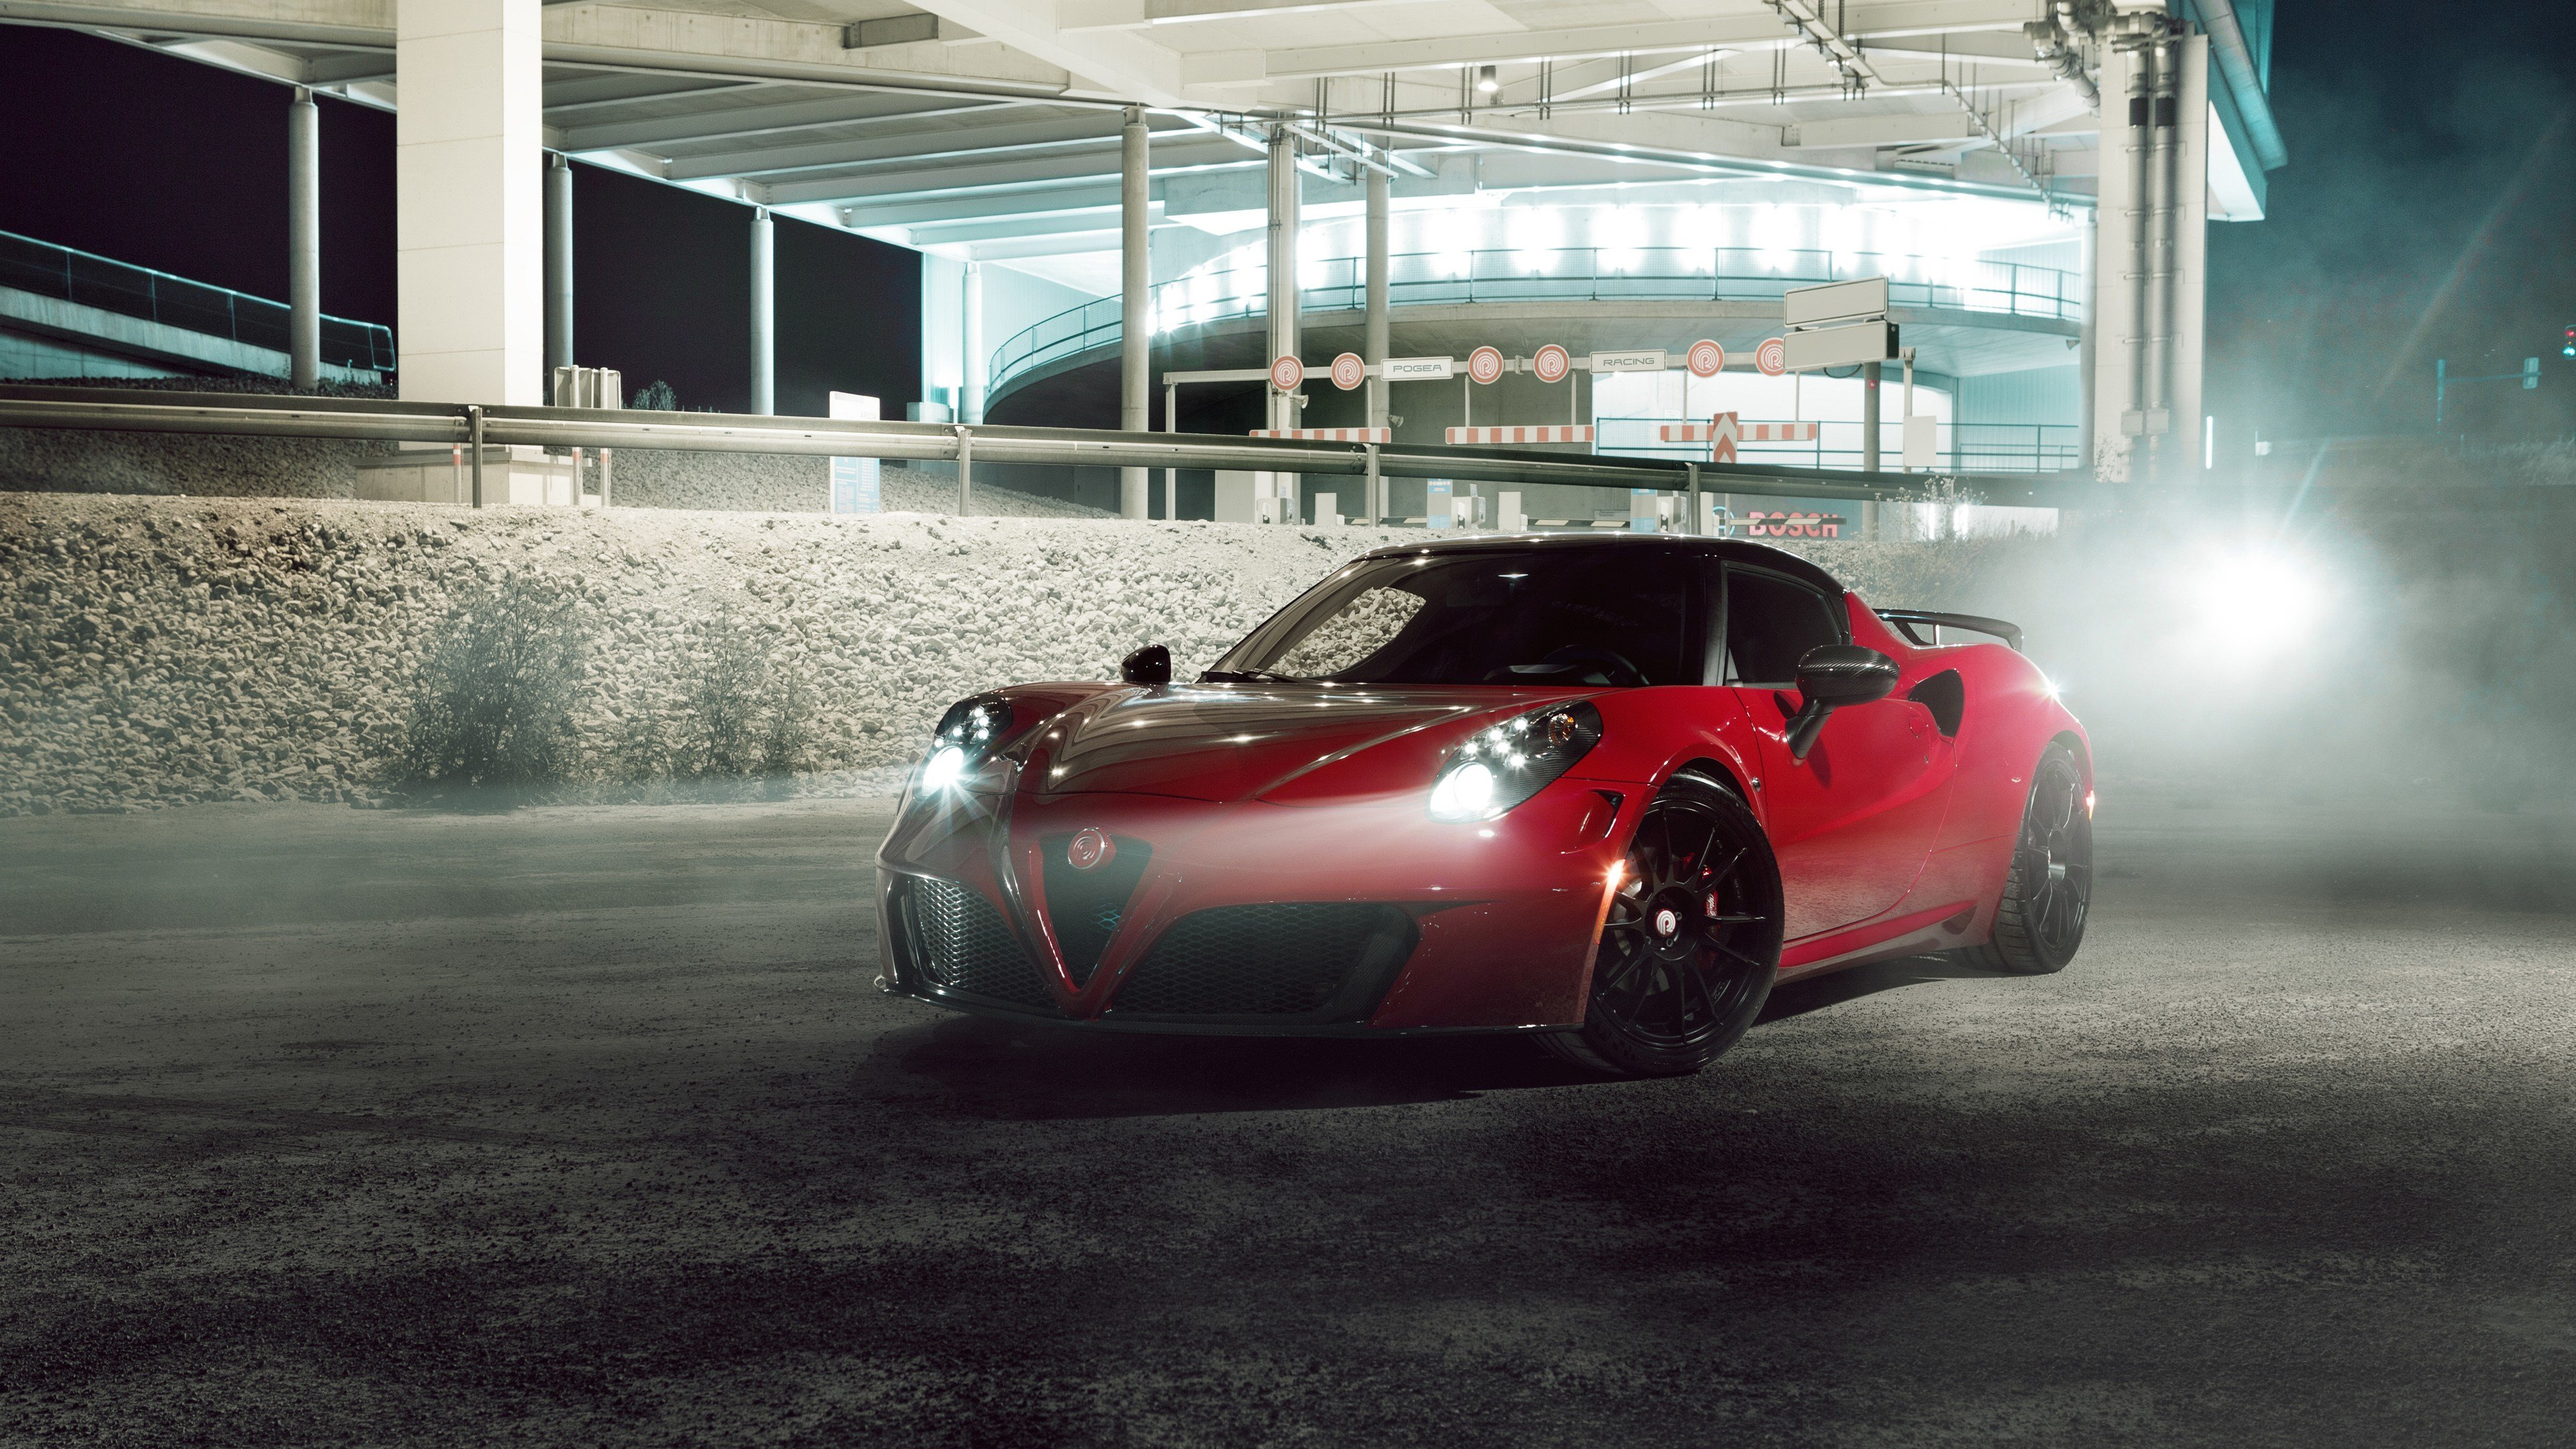 Latest 2015 Pogea Racing Alfa Romeo 4C Wallpaper Hd Car Free Download